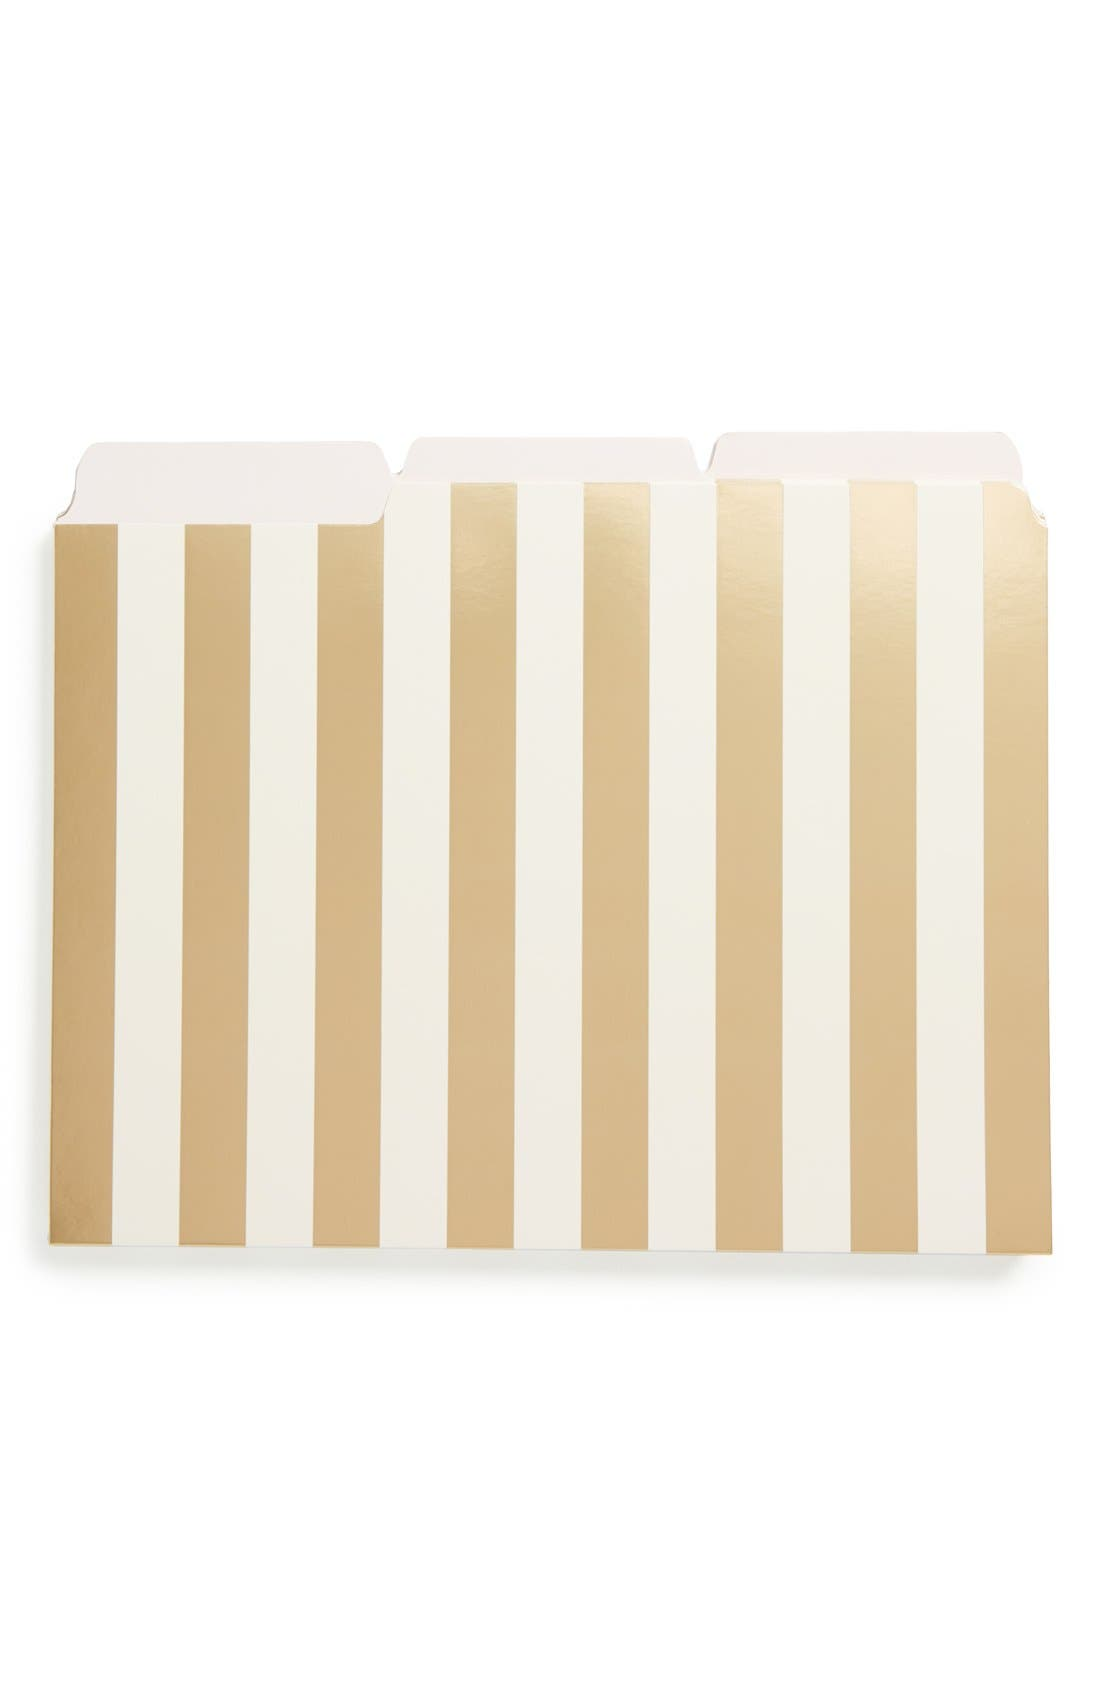 KATE SPADE NEW YORK file folders